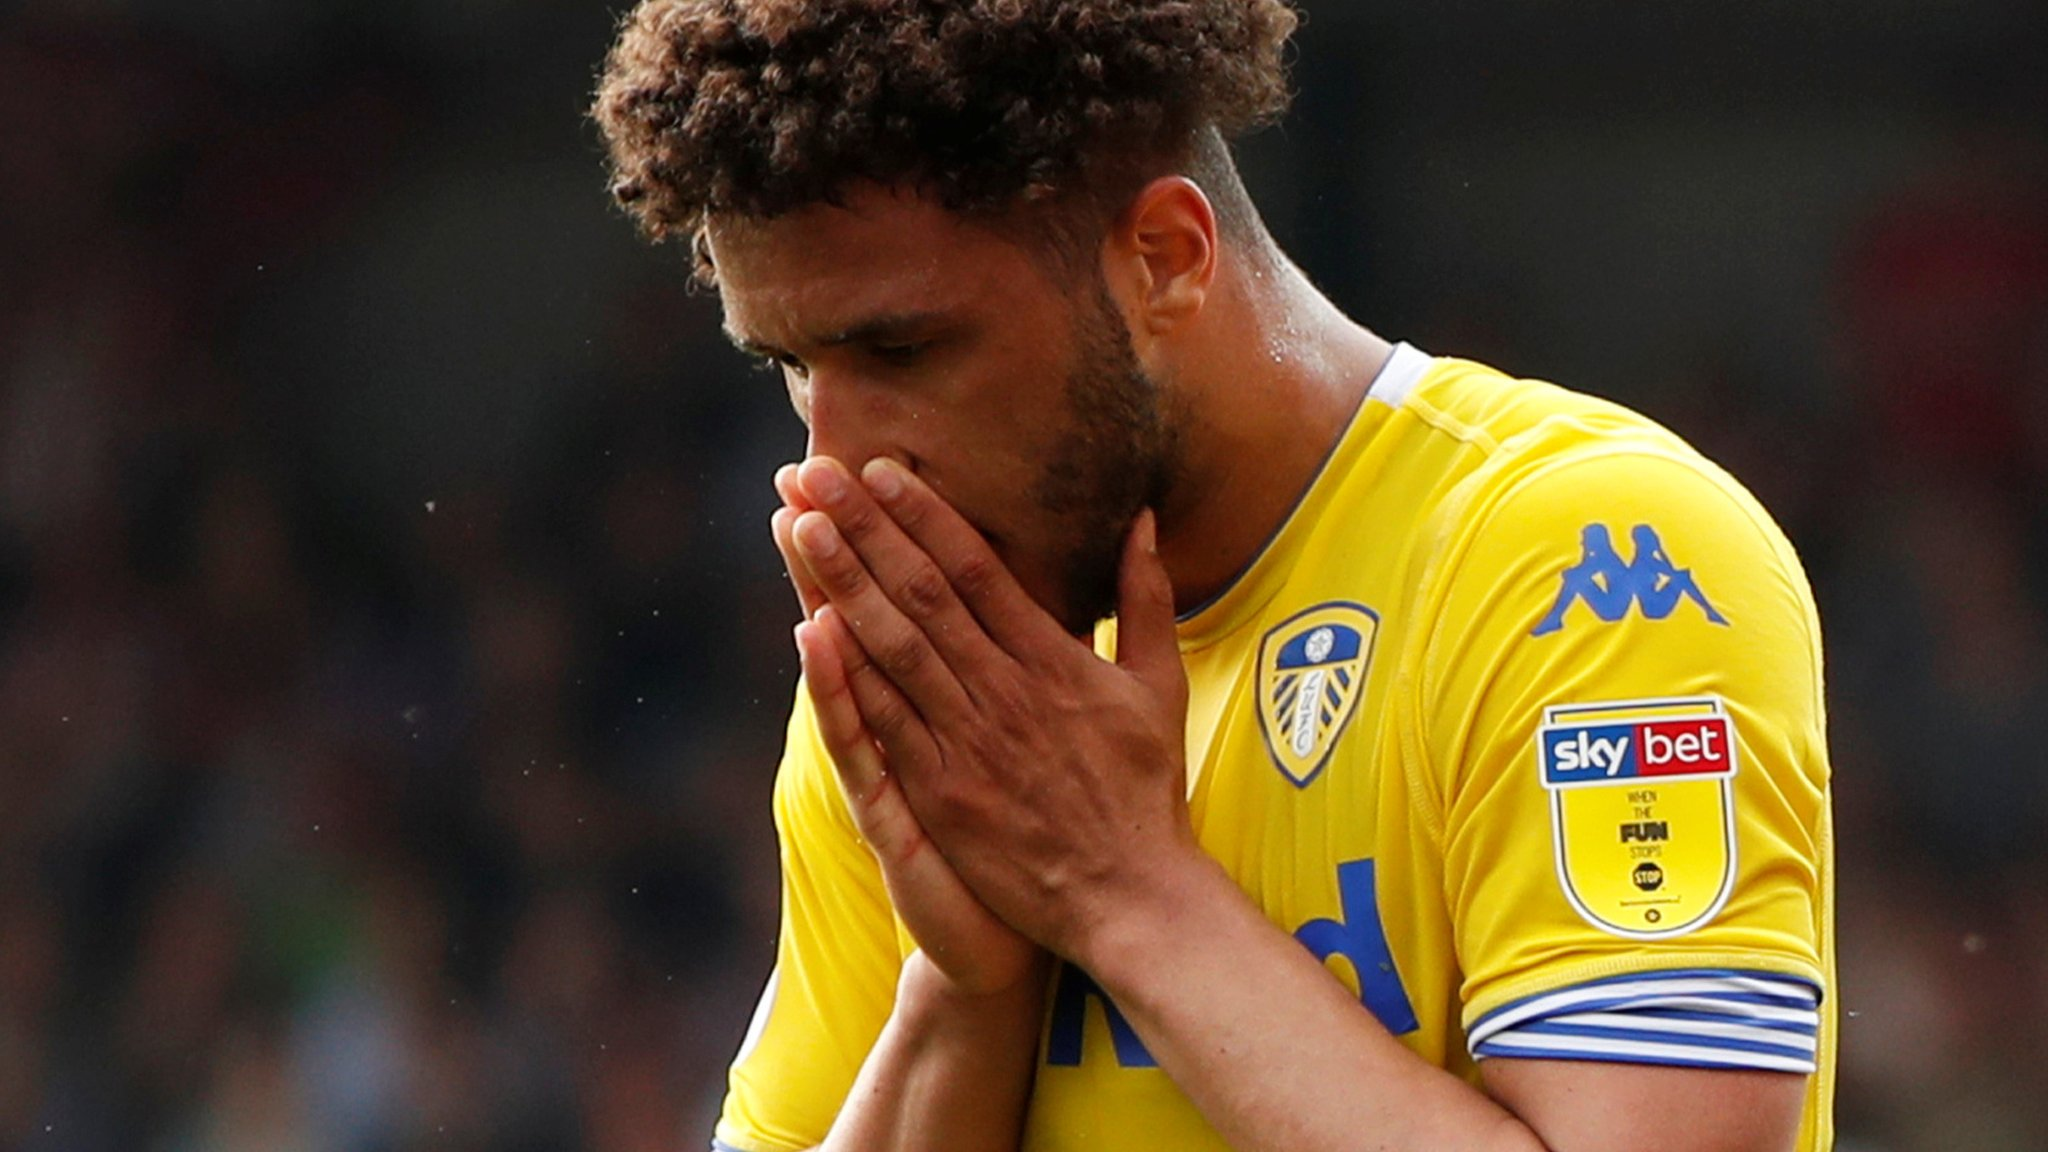 Leeds lose ground in automatic promotion race after Brentford loss